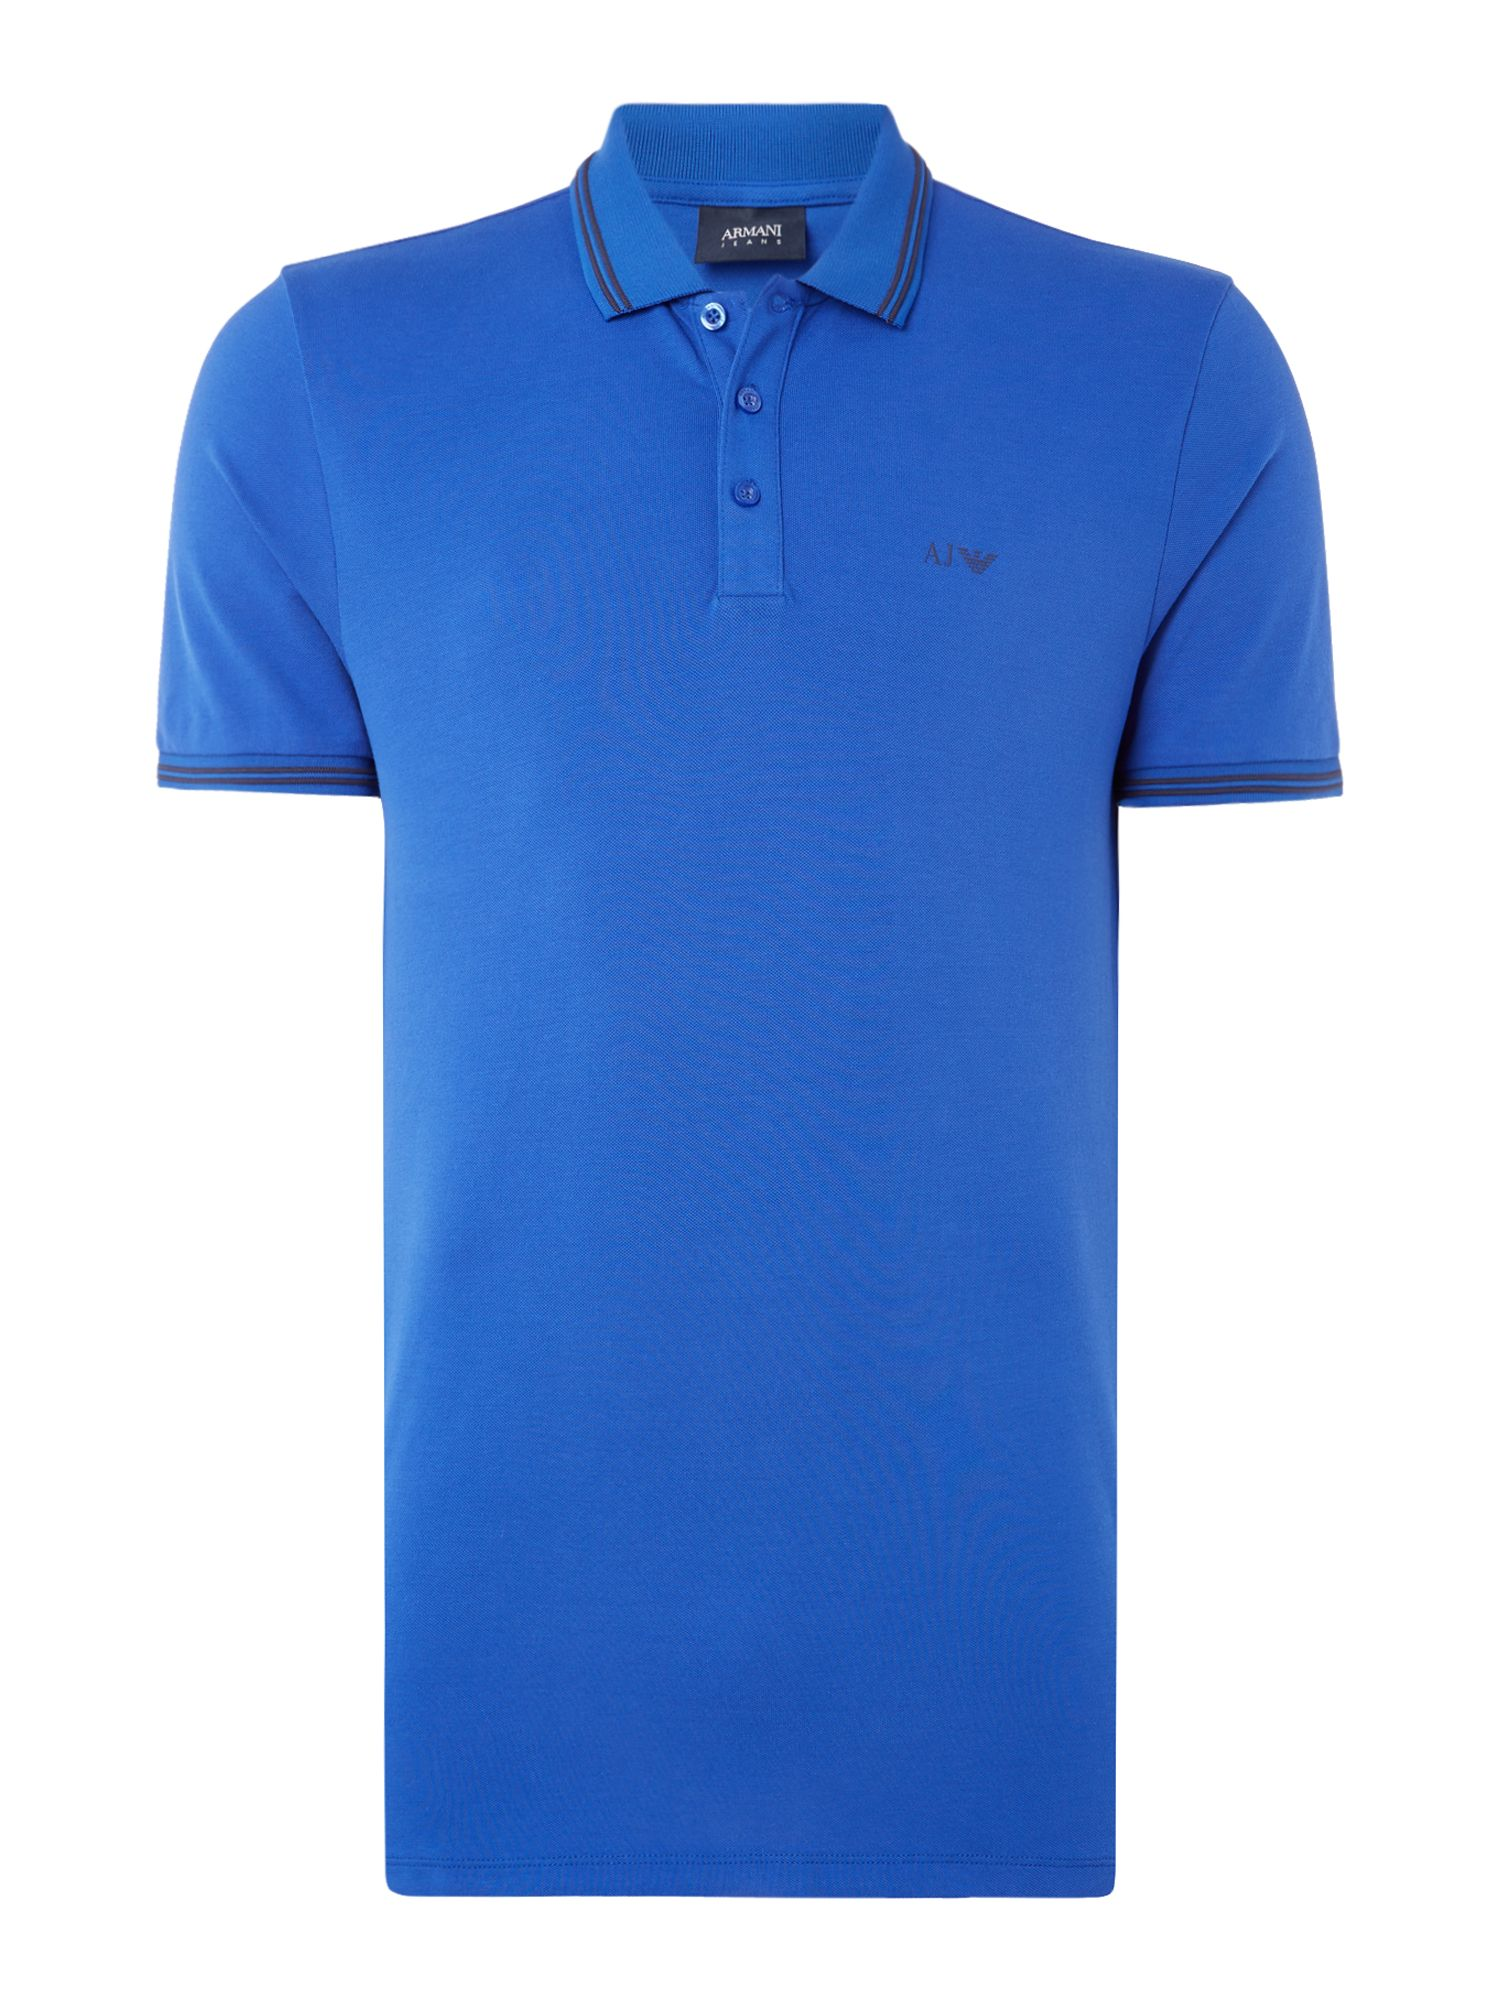 Men's Armani Jeans Regular fit tipped logo polo, Bright Blue